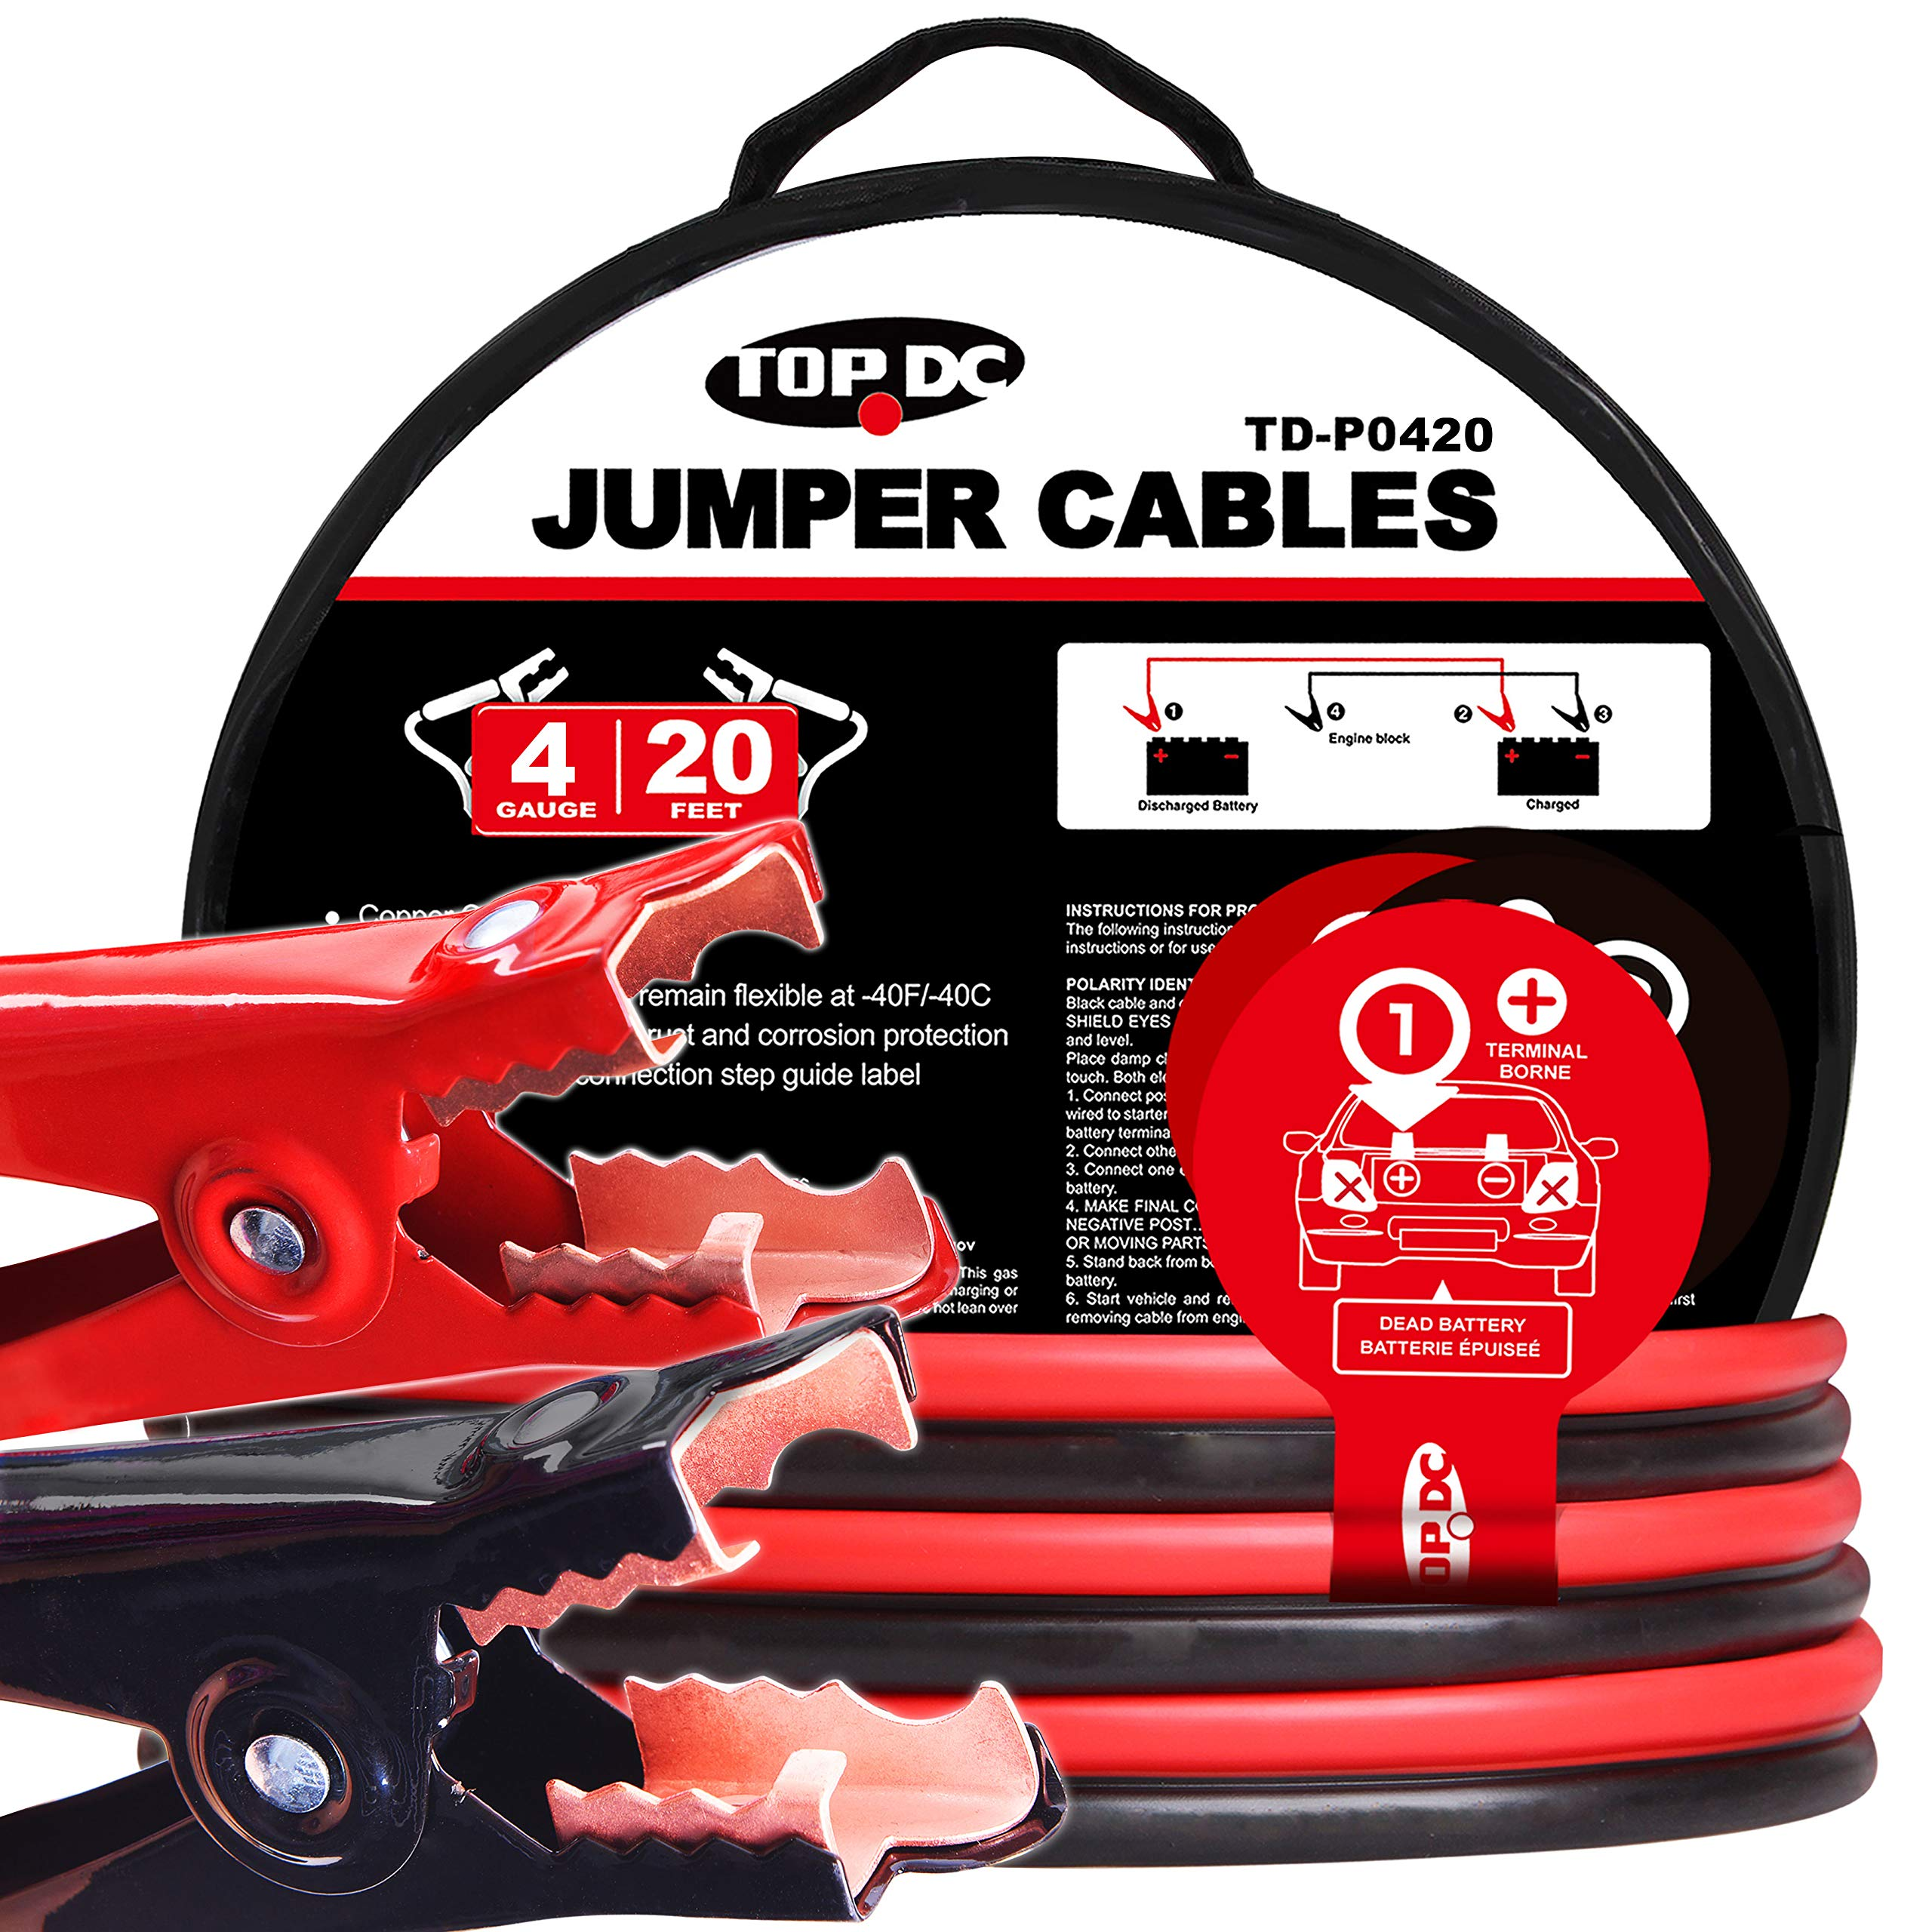 Best Heavy Duty Jumper Cables For Trucks Amazon